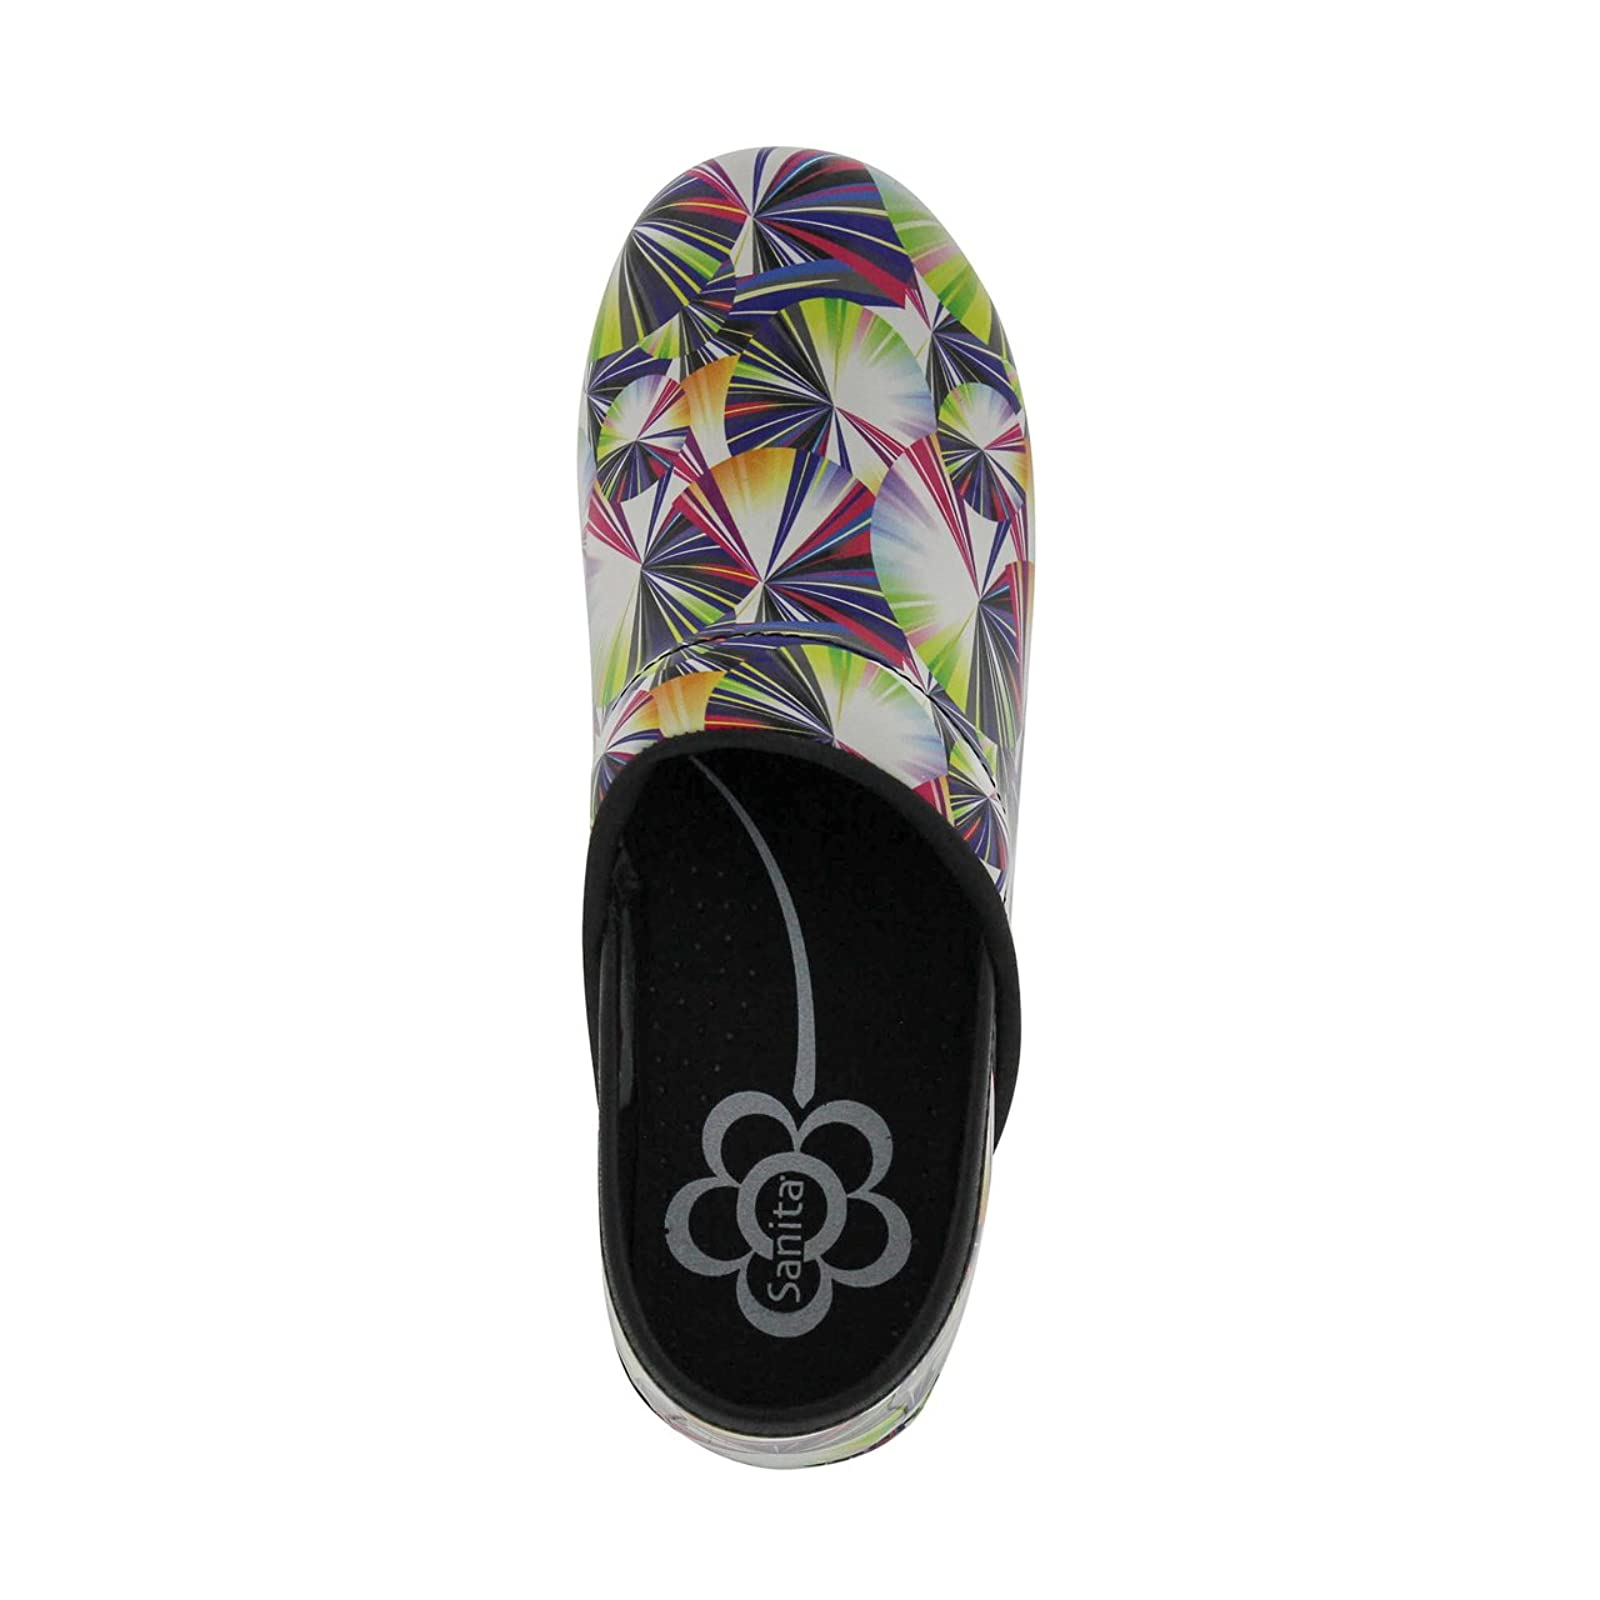 Sanita Women's Original Pro. Geo Clog 459156 Multi - 6